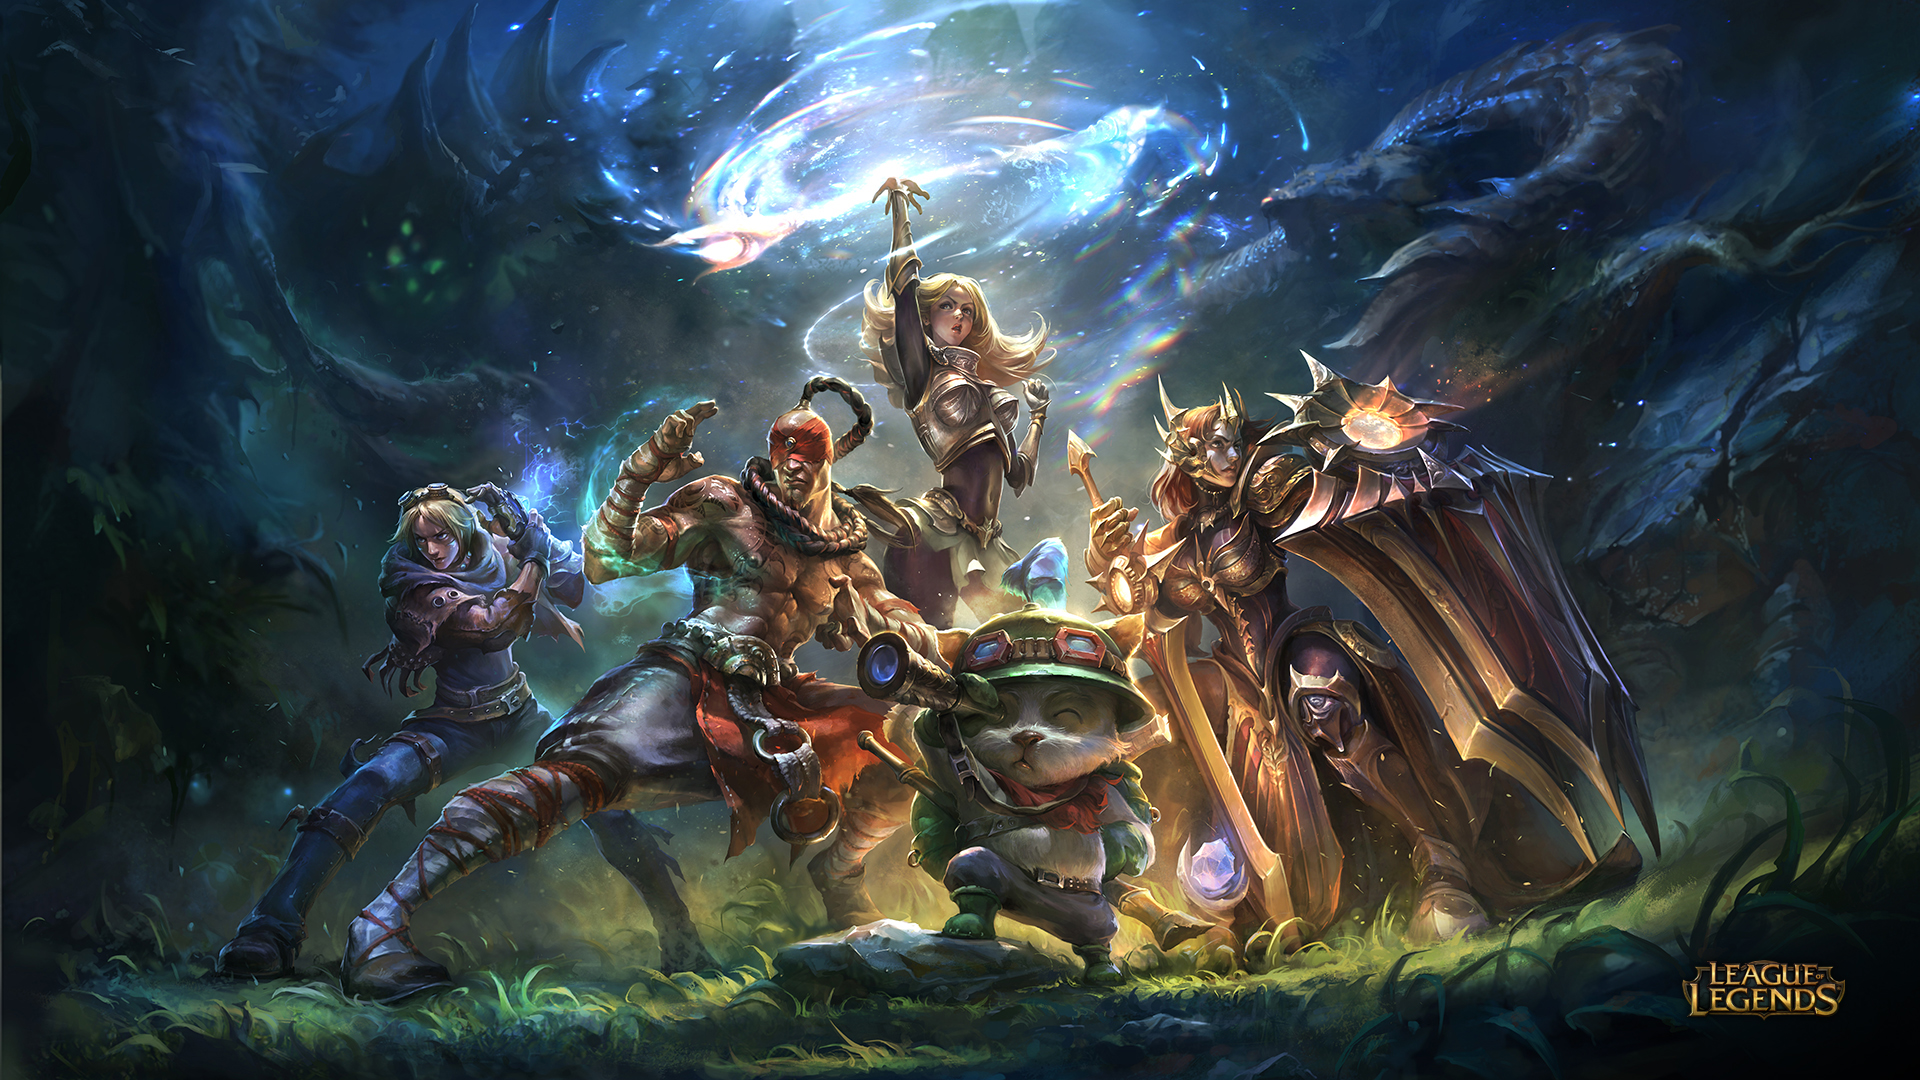 Wallpaper | League of Legends